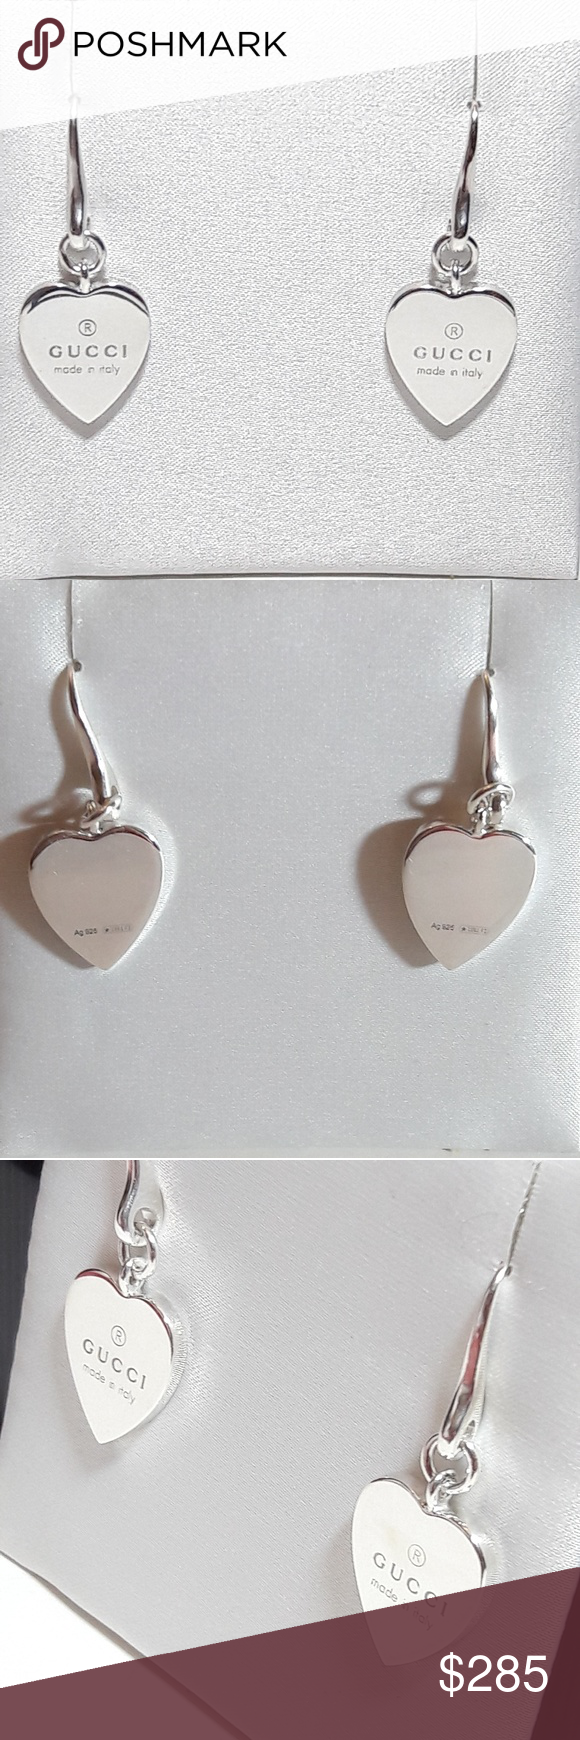 1acedb6062b Authentic Gucci heart drop earrings Authentic GUCCI drop earrings. 925  sterling silver Heart shaped with engraved logo Hook closure Made in Italy  Brand new ...